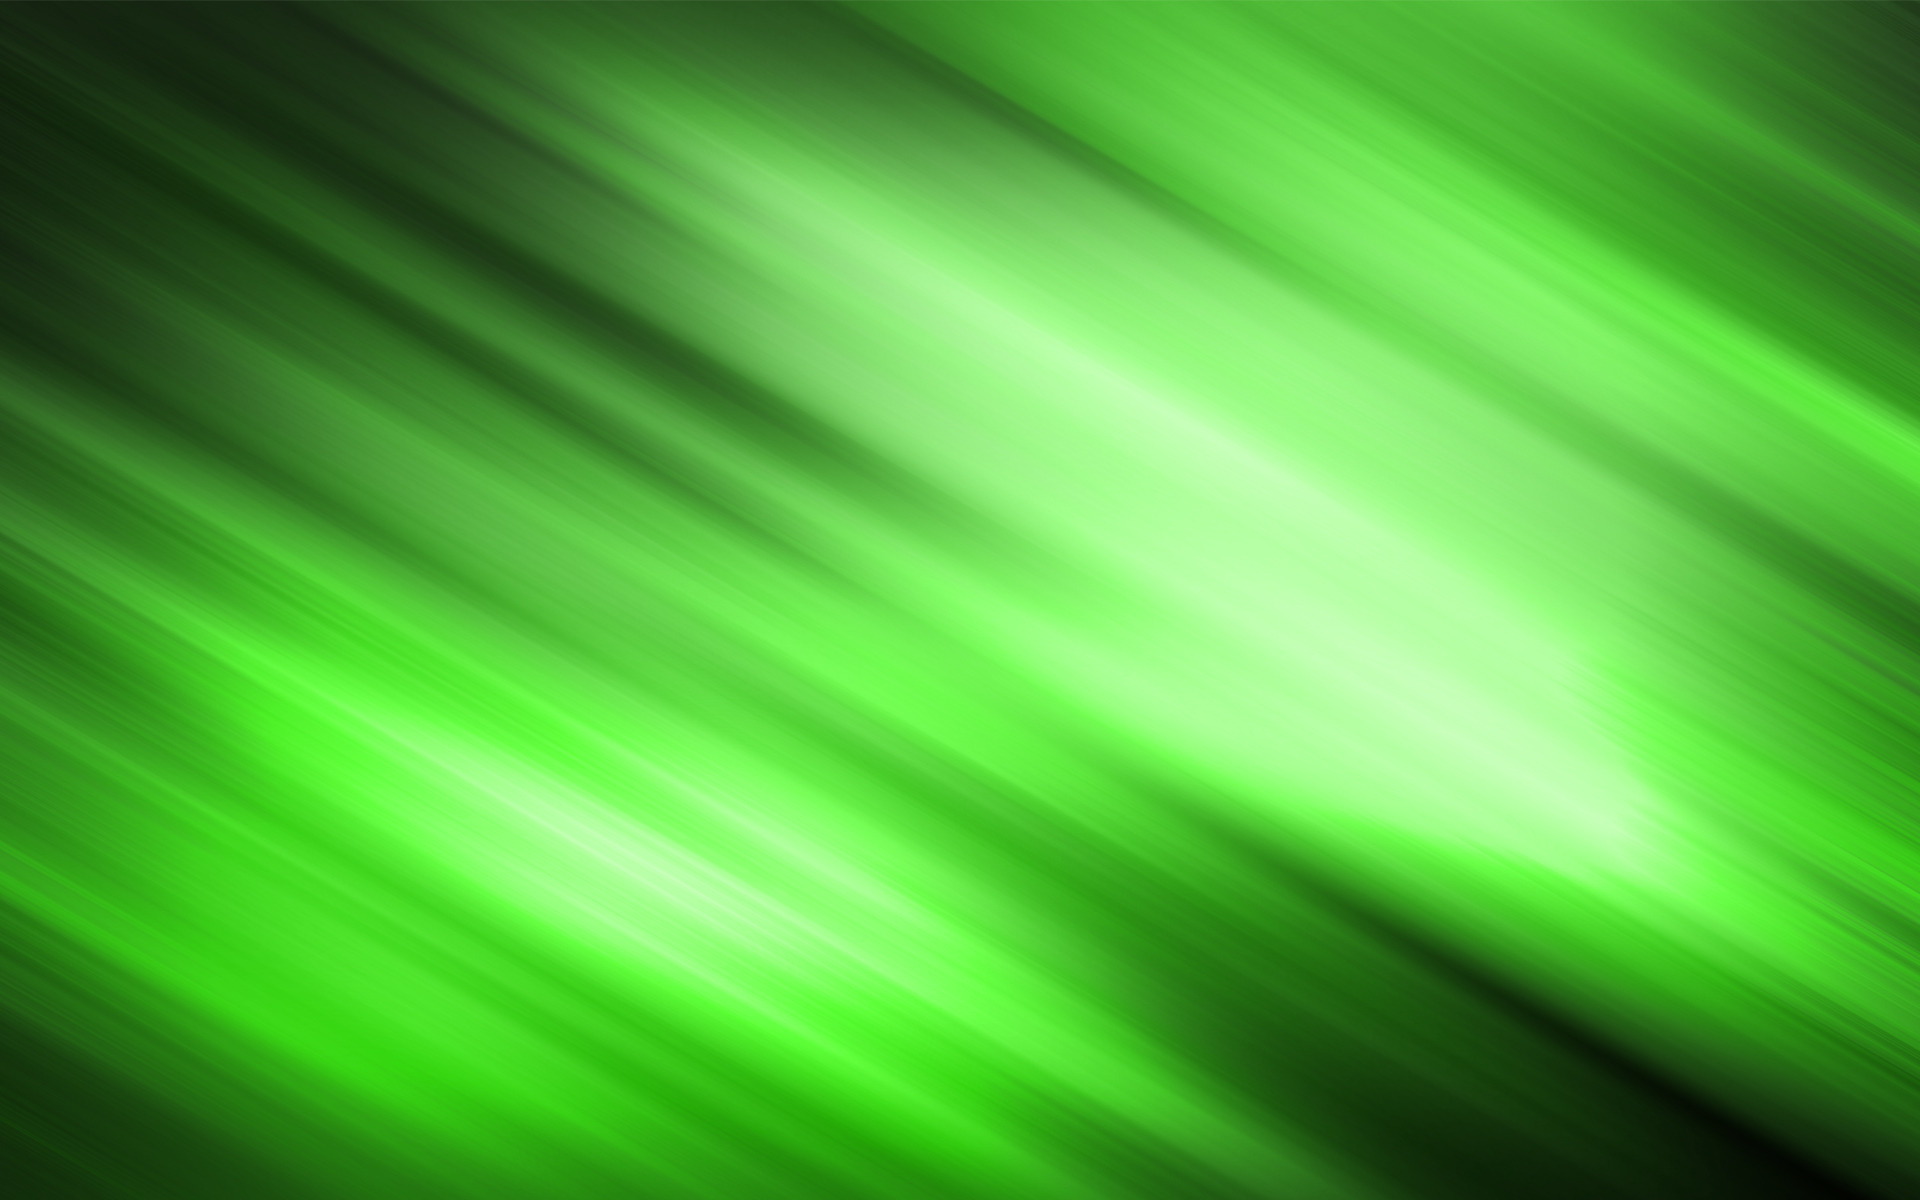 wallpapers filter papers 0ctans green resolutions room clean 1920x1200